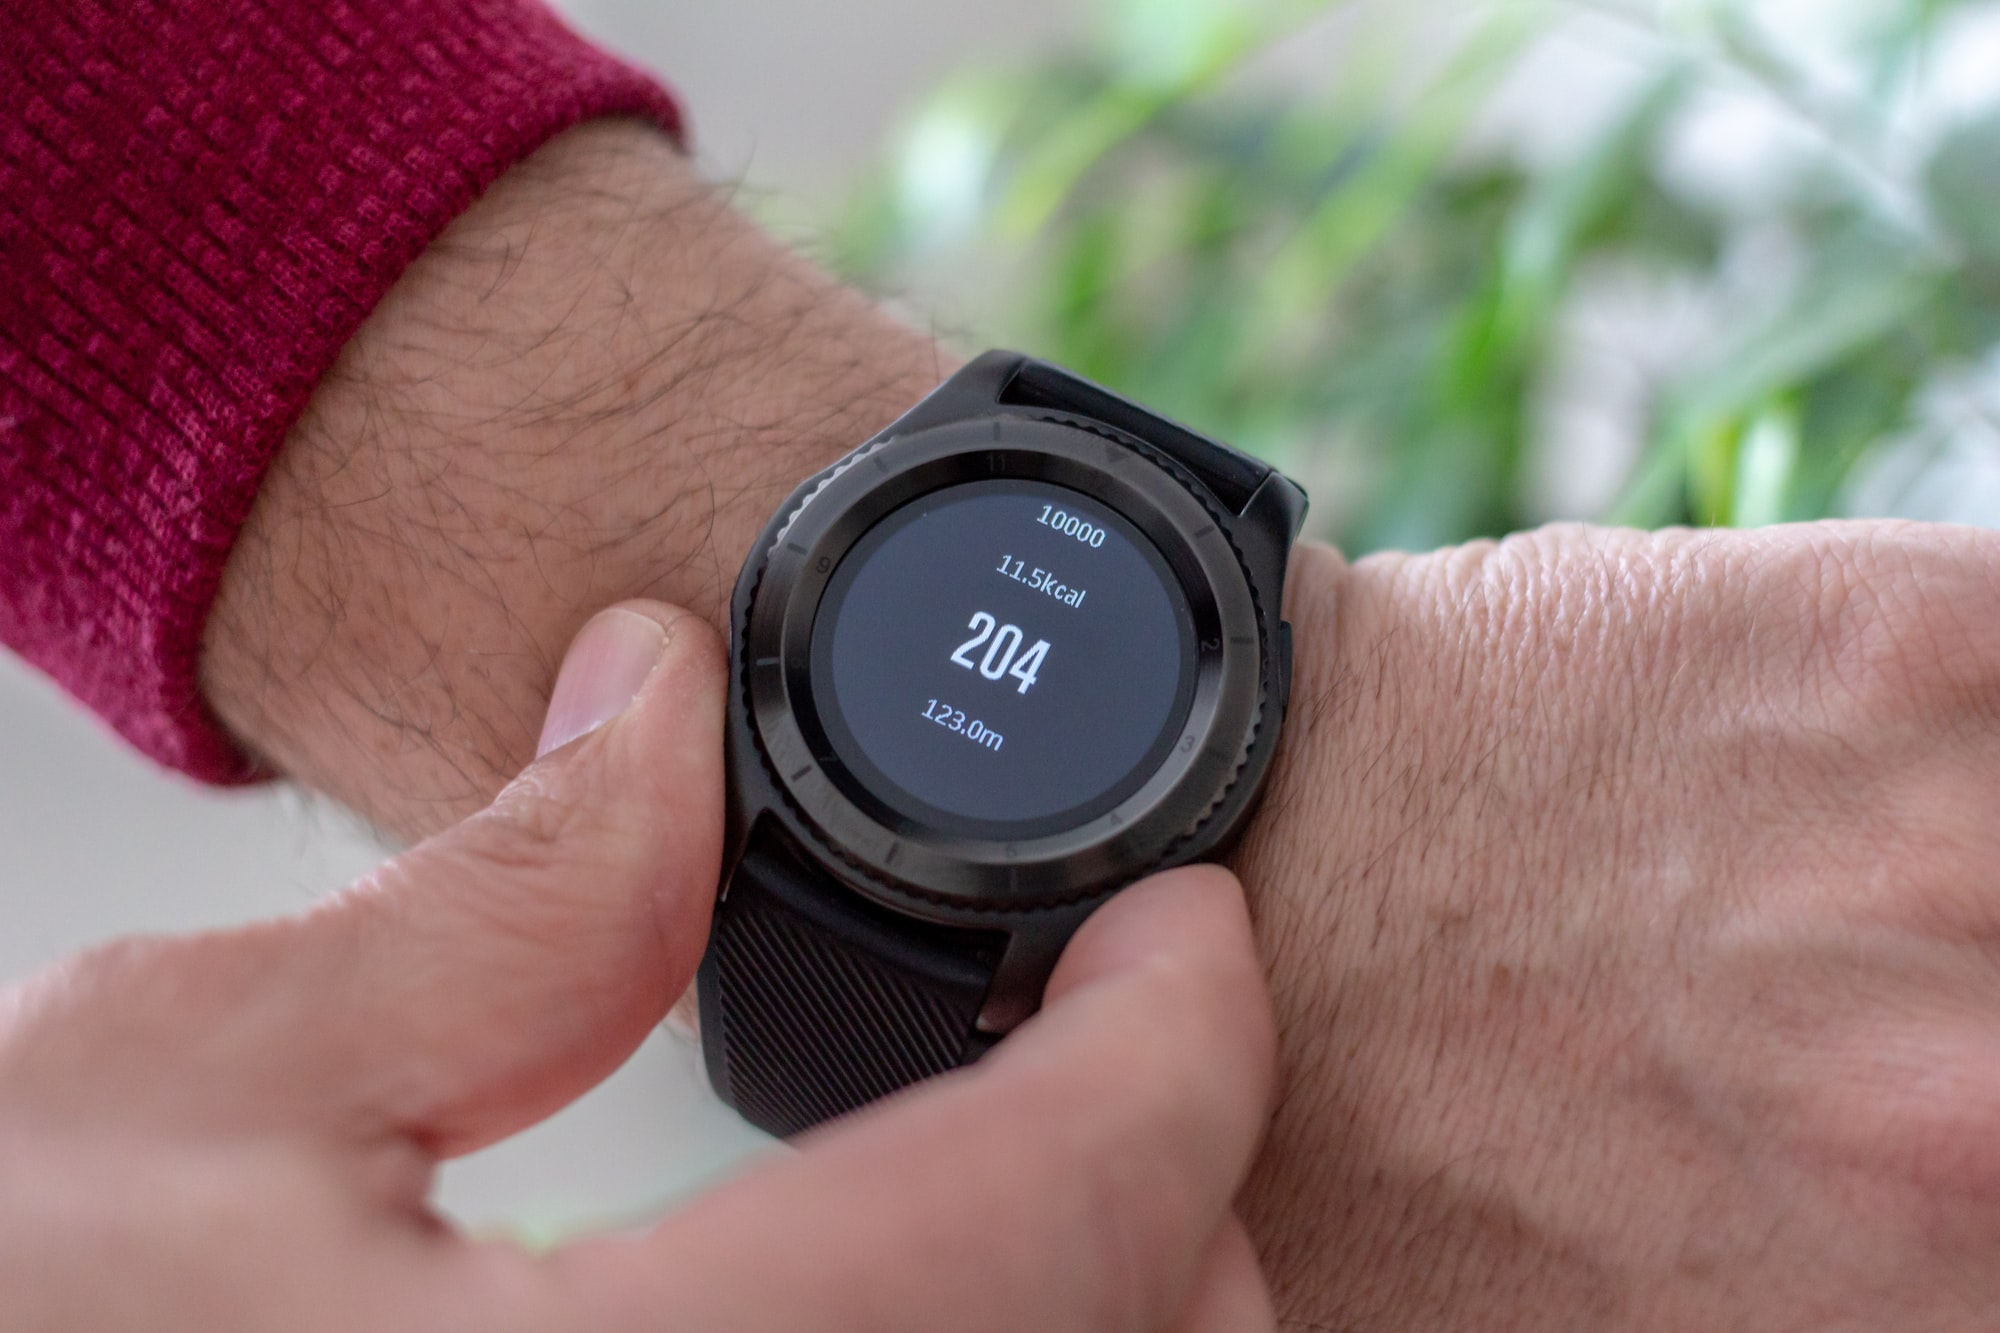 Smartwatch - sports watch - measures the pulse, steps, pace and quality of sleep. Also calculates calories burned.